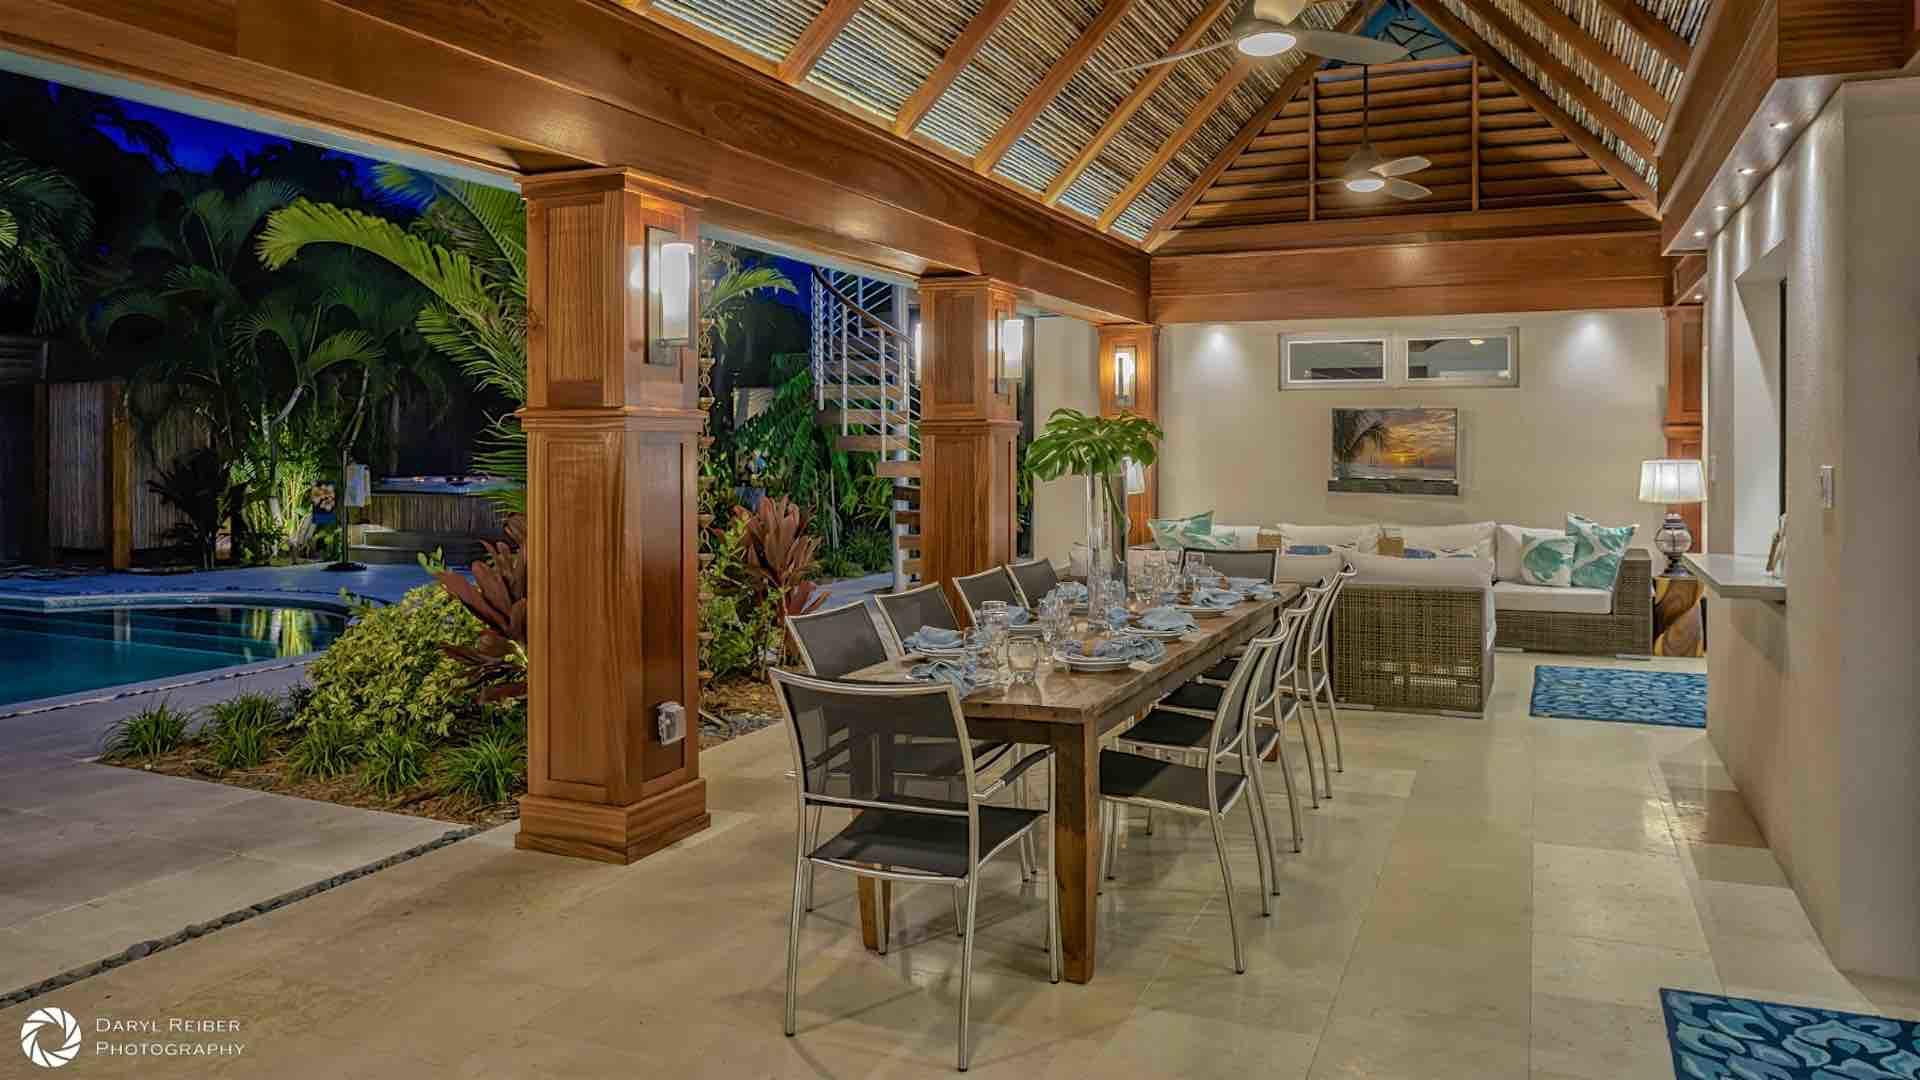 The covered lanai offers overhead fans and plenty of lighting so you can enjoy using it day or night...